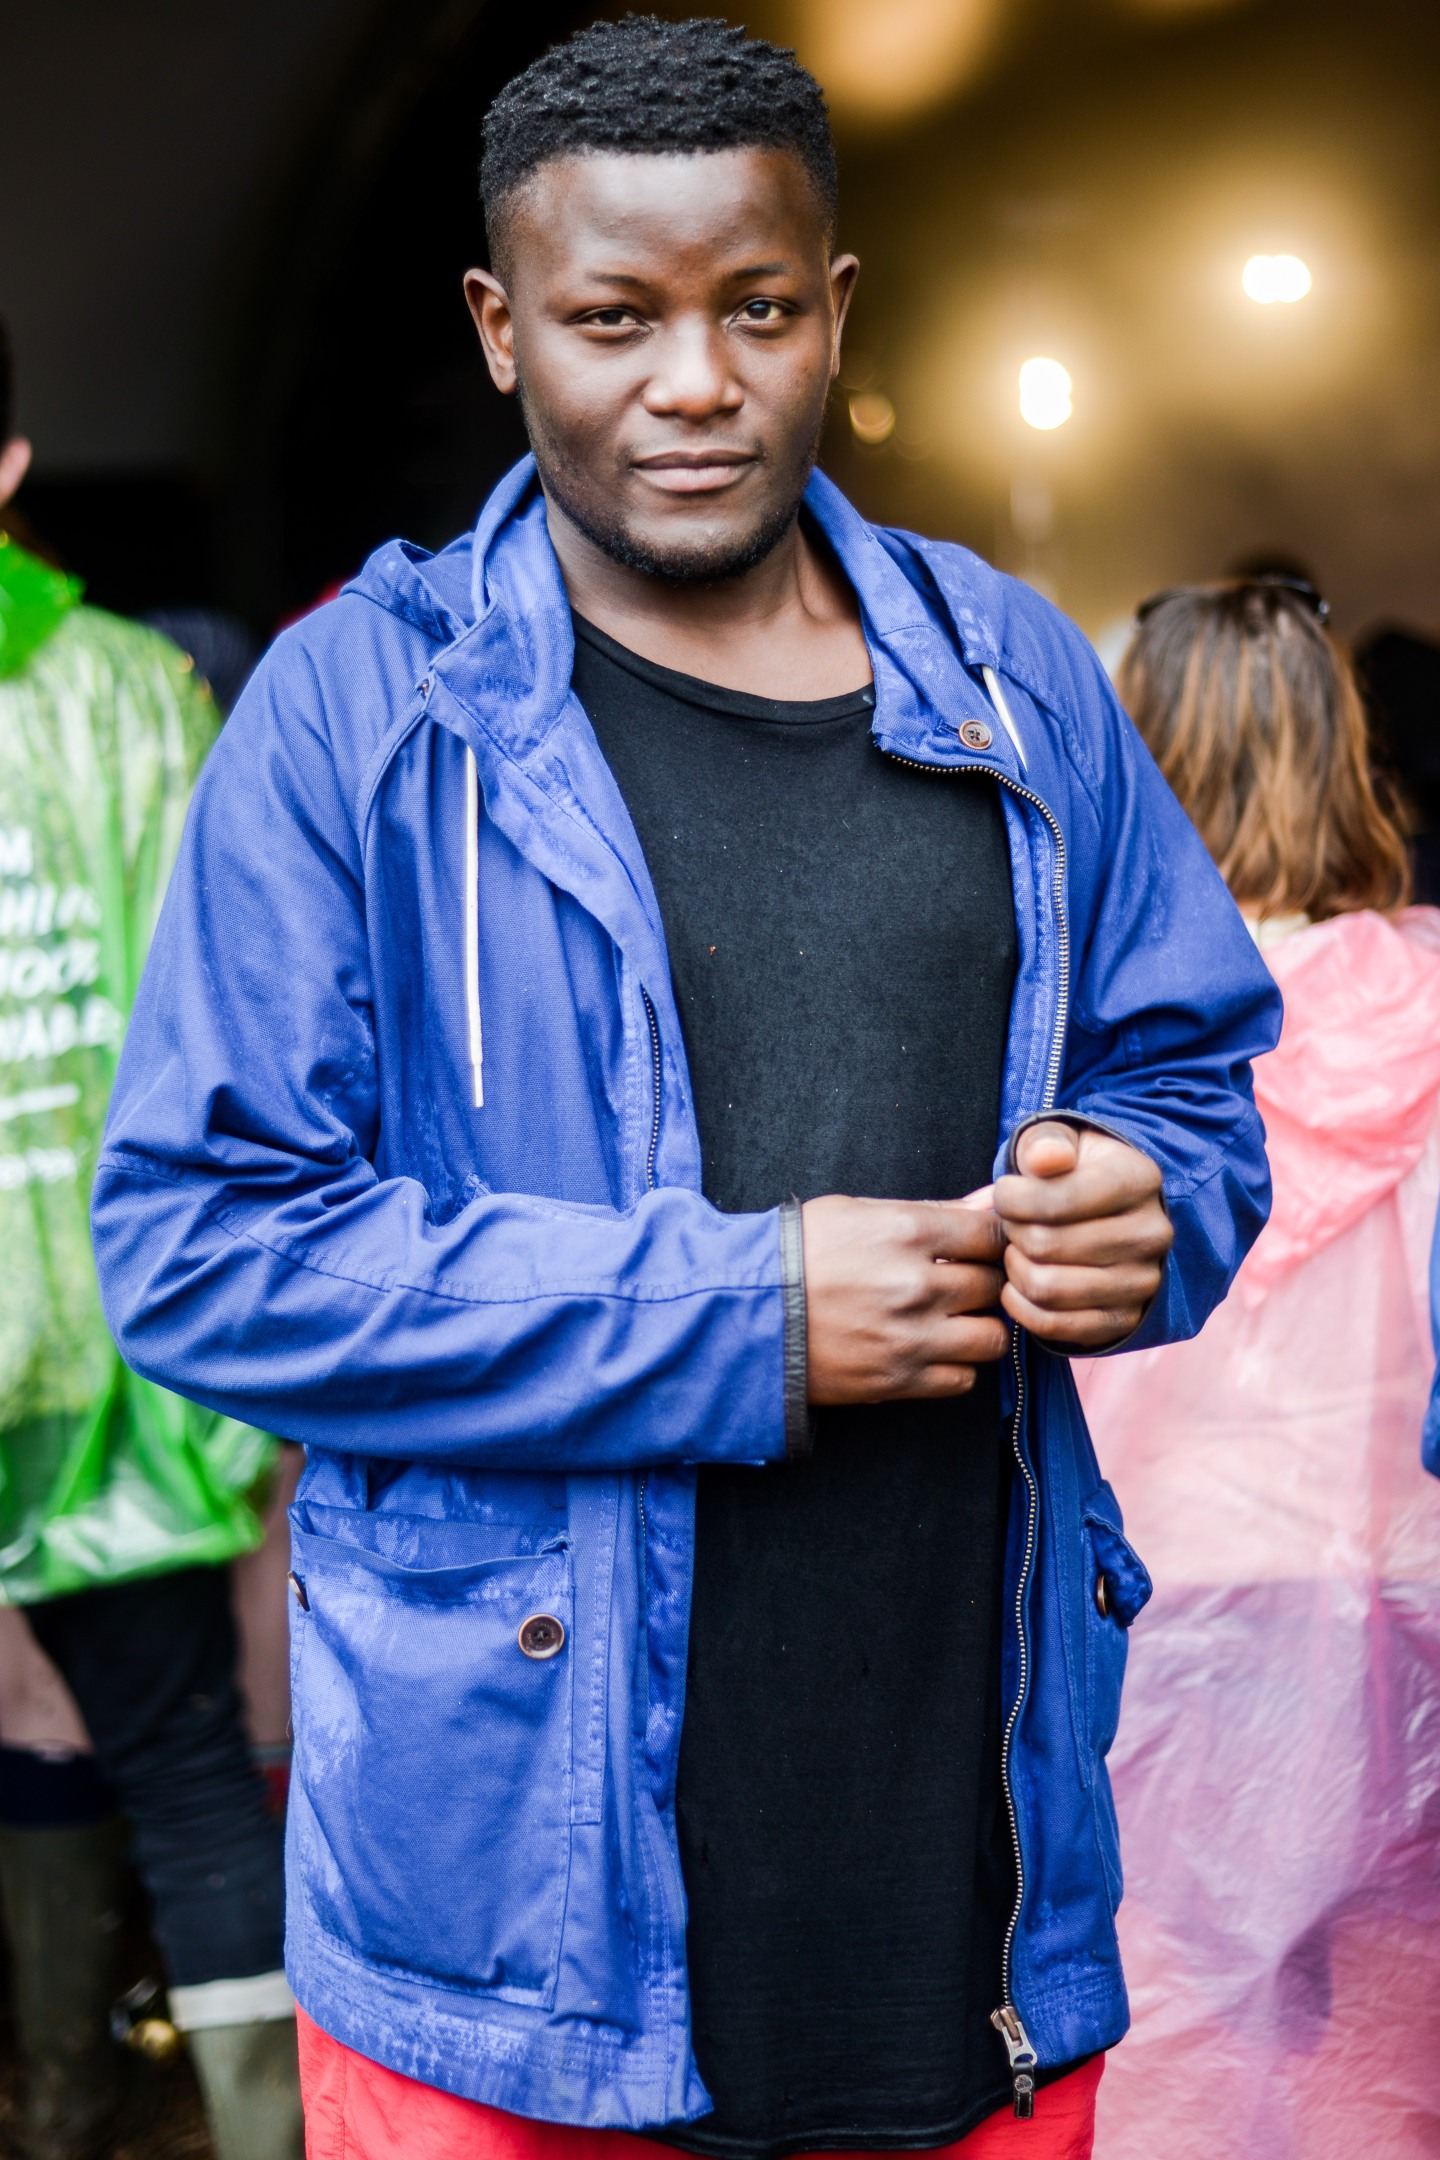 7 Grime Fans On What Seeing Grime At Glastonbury Means To Them